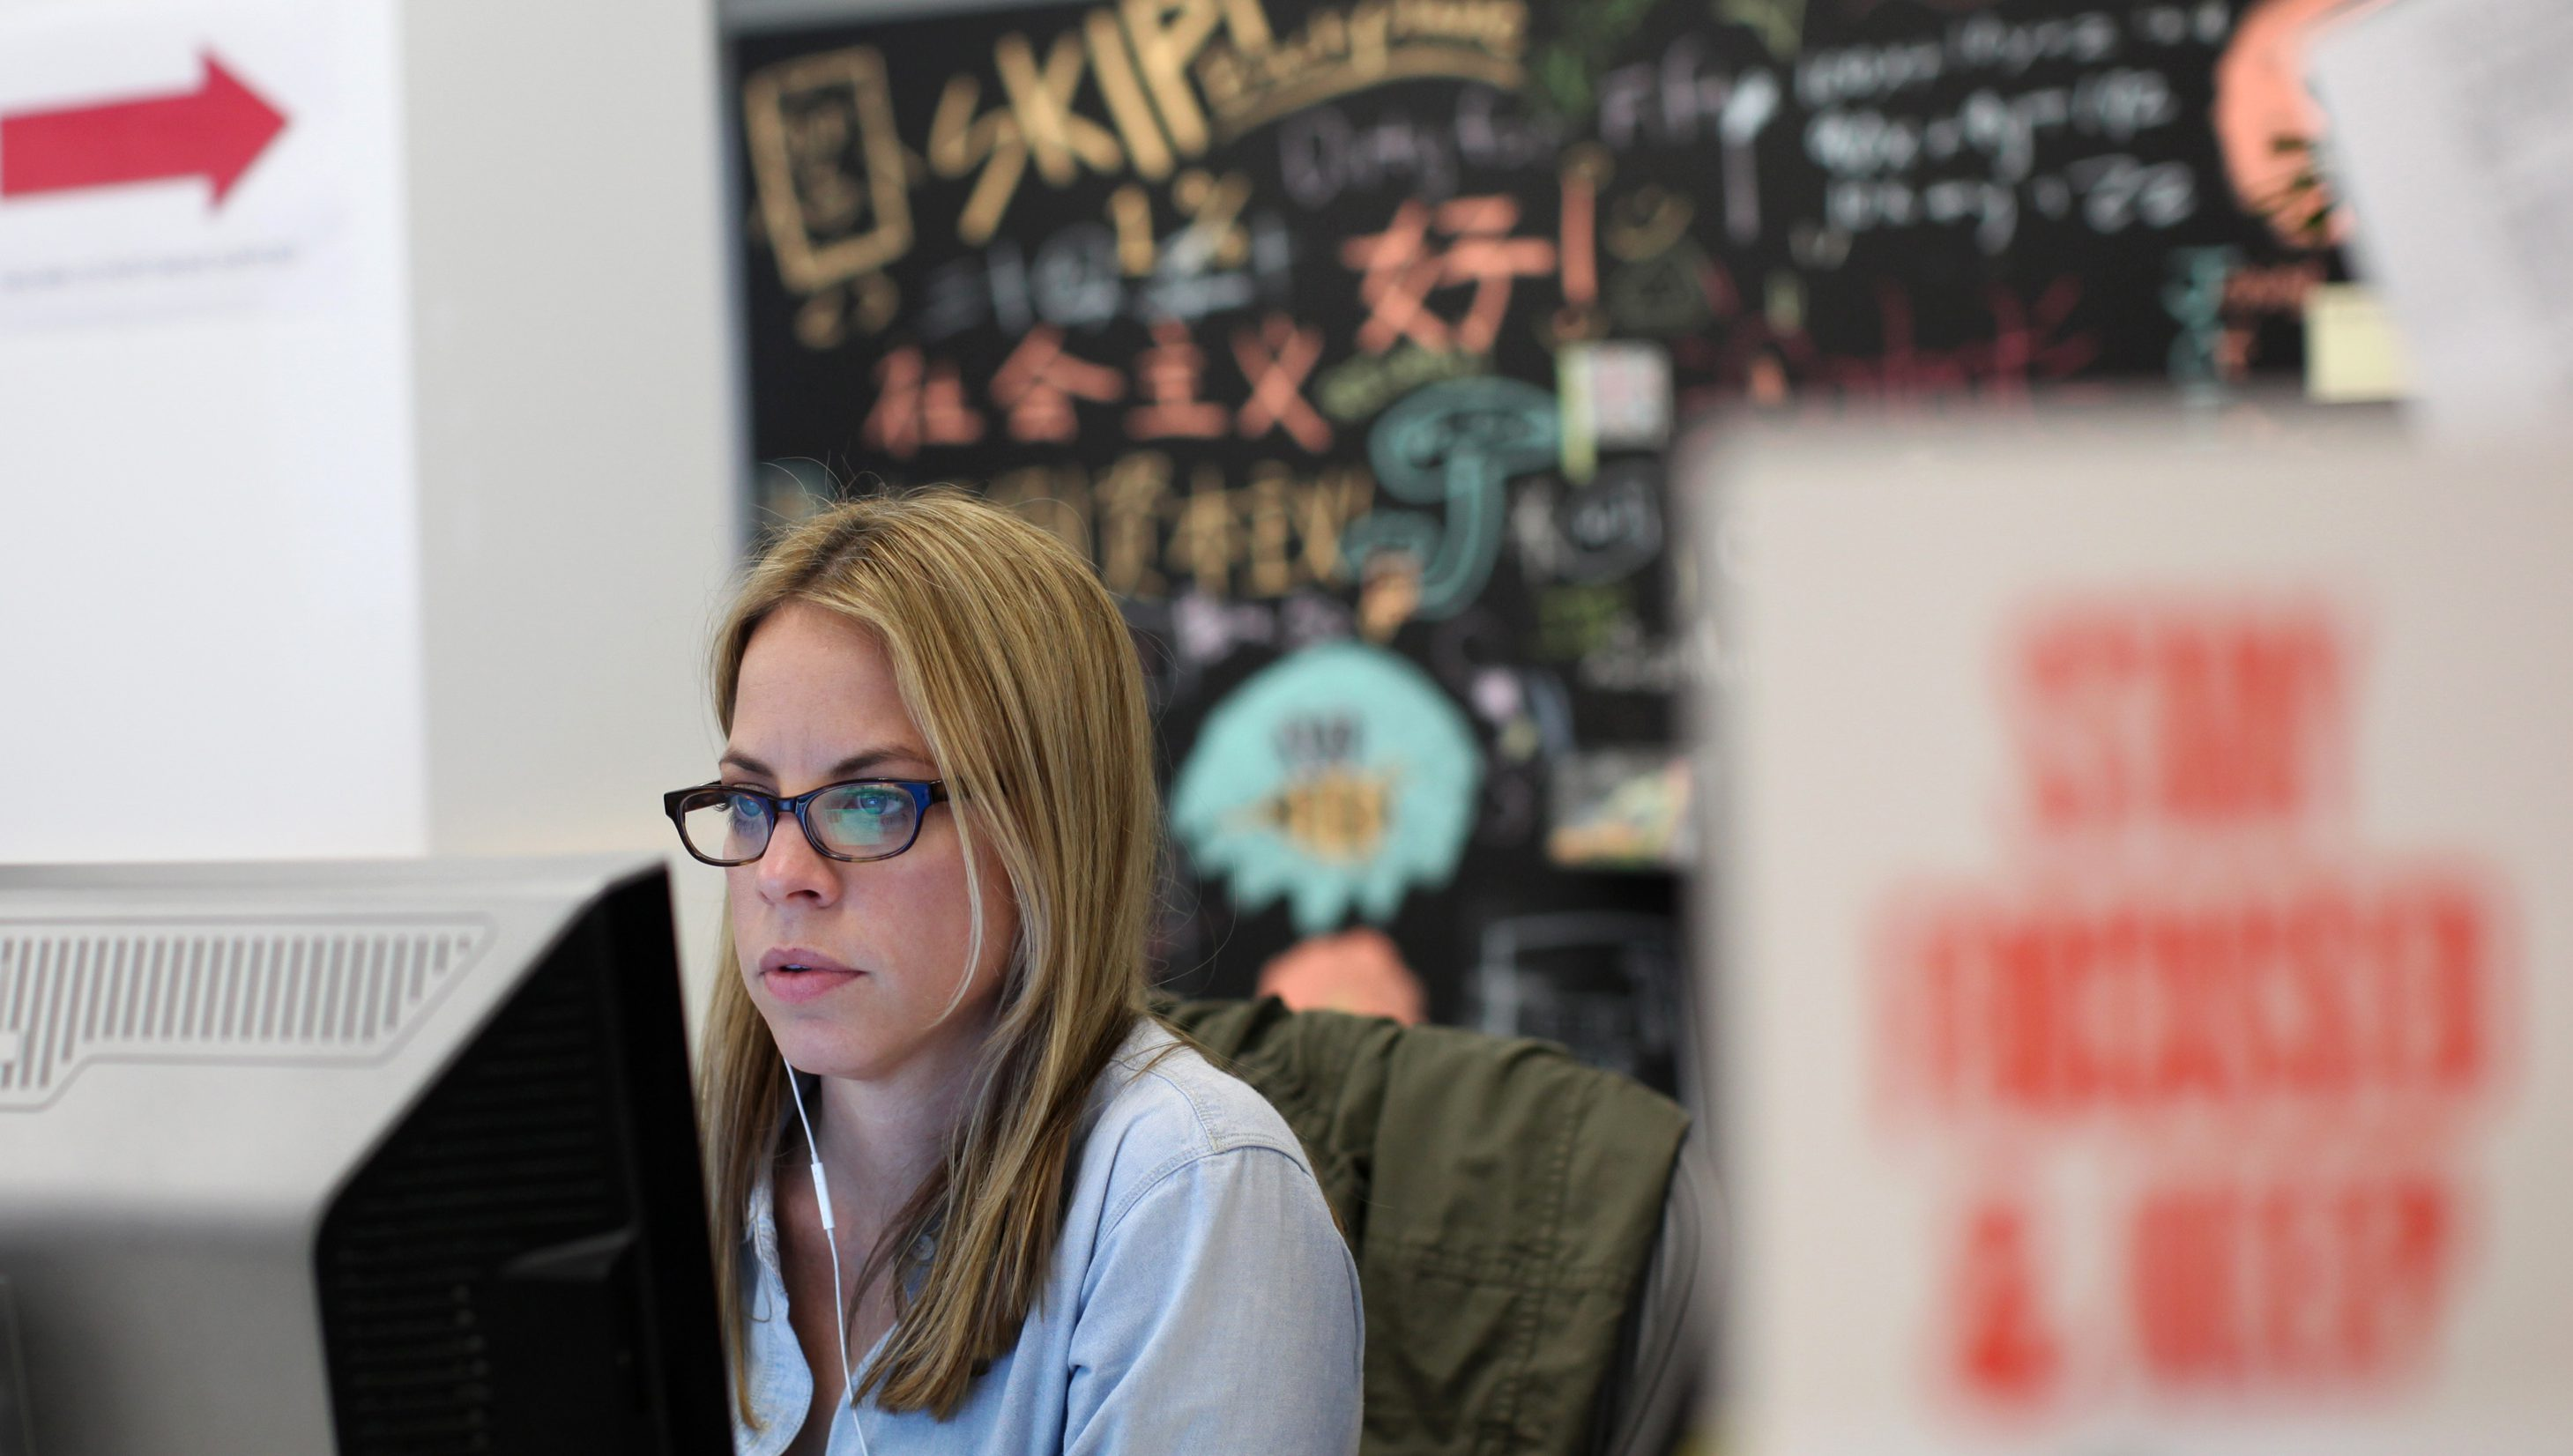 """A Facebook employee works in the design studio at the company's headquarters in Menlo Park, California March 2, 2012. Famous for a culture that glorifies the """"hacker way,"""" Facebook now talks of integrating """"design thinking"""" into its products and has steadily beefed up its design studio. Design chief Kate Aronowitz dispatches designers who are paired with an engineer, a product manager and sometimes a researcher to conceive new products or improve features such as user profiles or messages. Picture taken March 2, 2012. To match Feature DESIGNERS-STARTUP/     REUTERS/Robert Galbraith  (UNITED STATES - Tags: SCIENCE TECHNOLOGY BUSINESS) - RTR30OBT"""